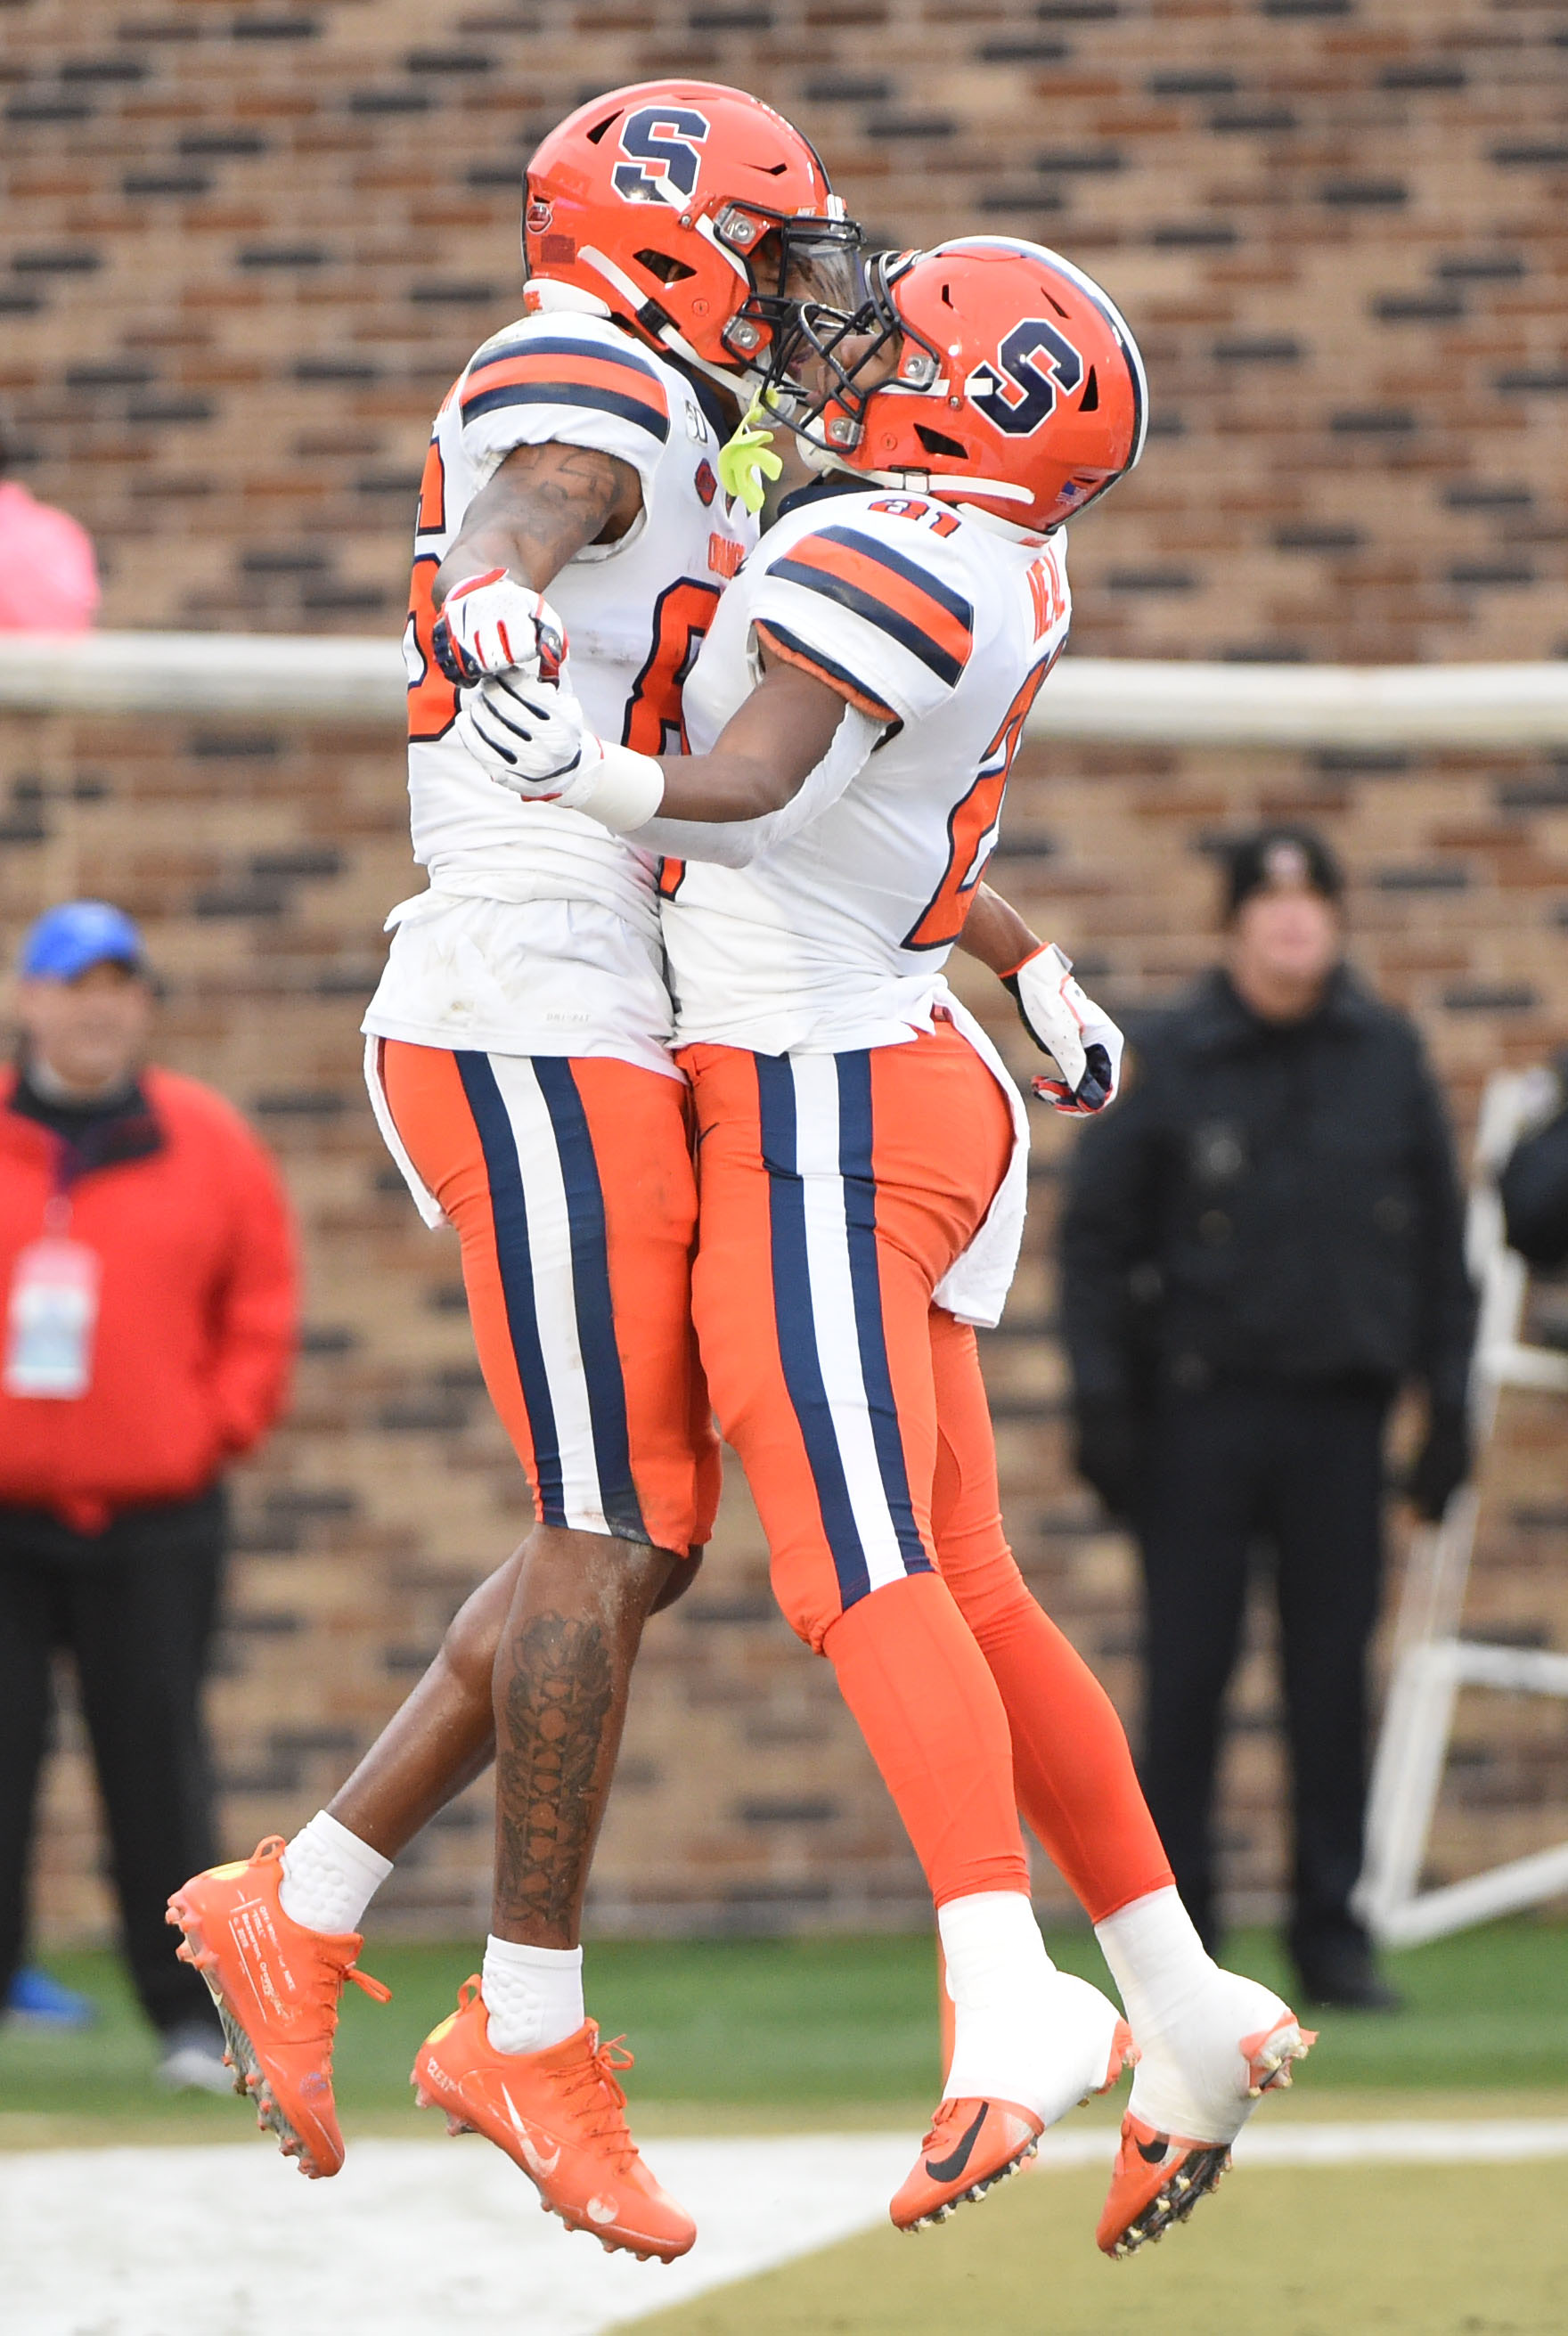 Syracuse football picks up first ACC win in 49-6 blowout win over Duke